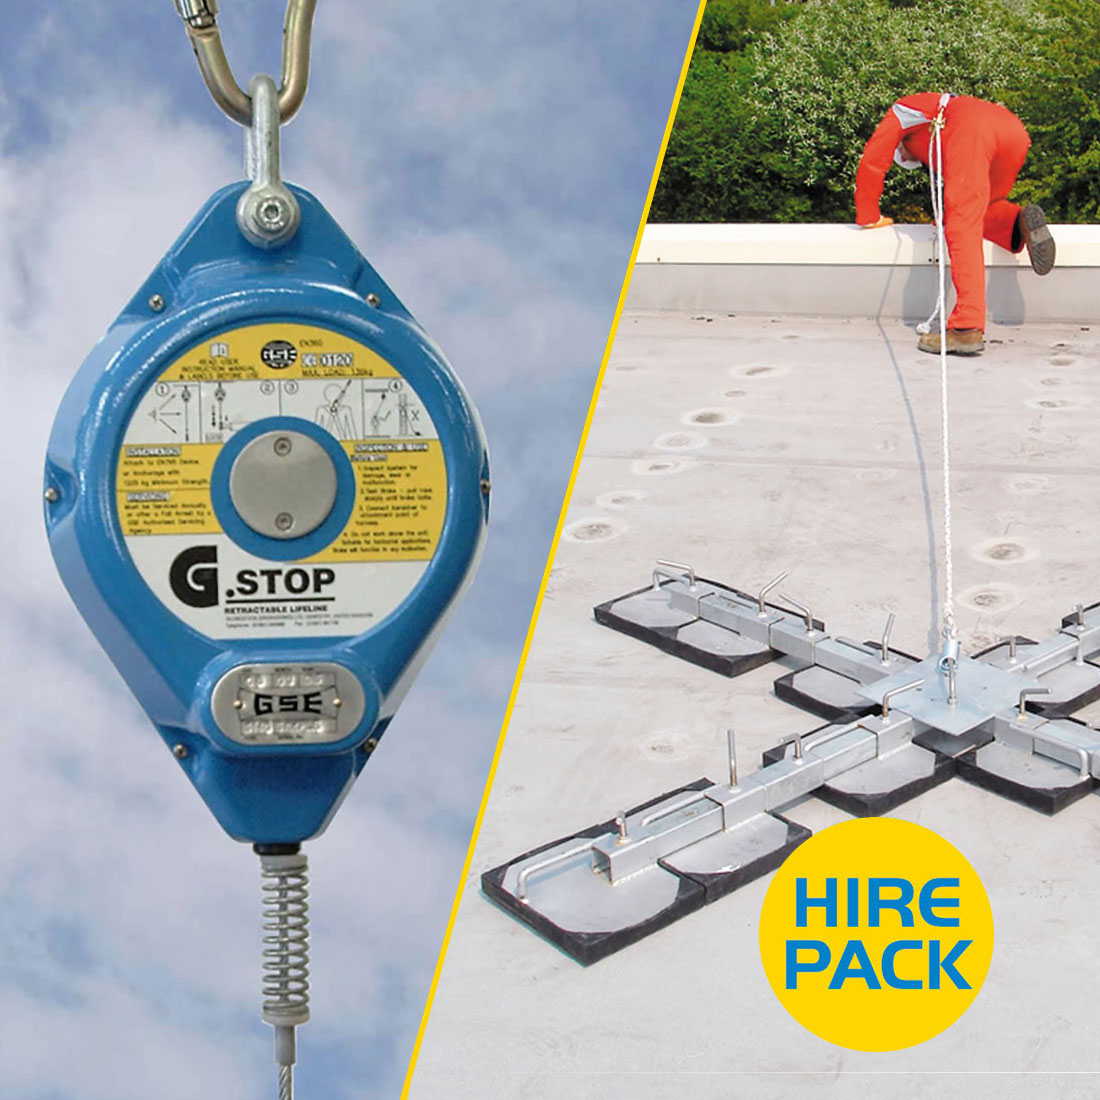 Roof Man Anchor Hire Pack